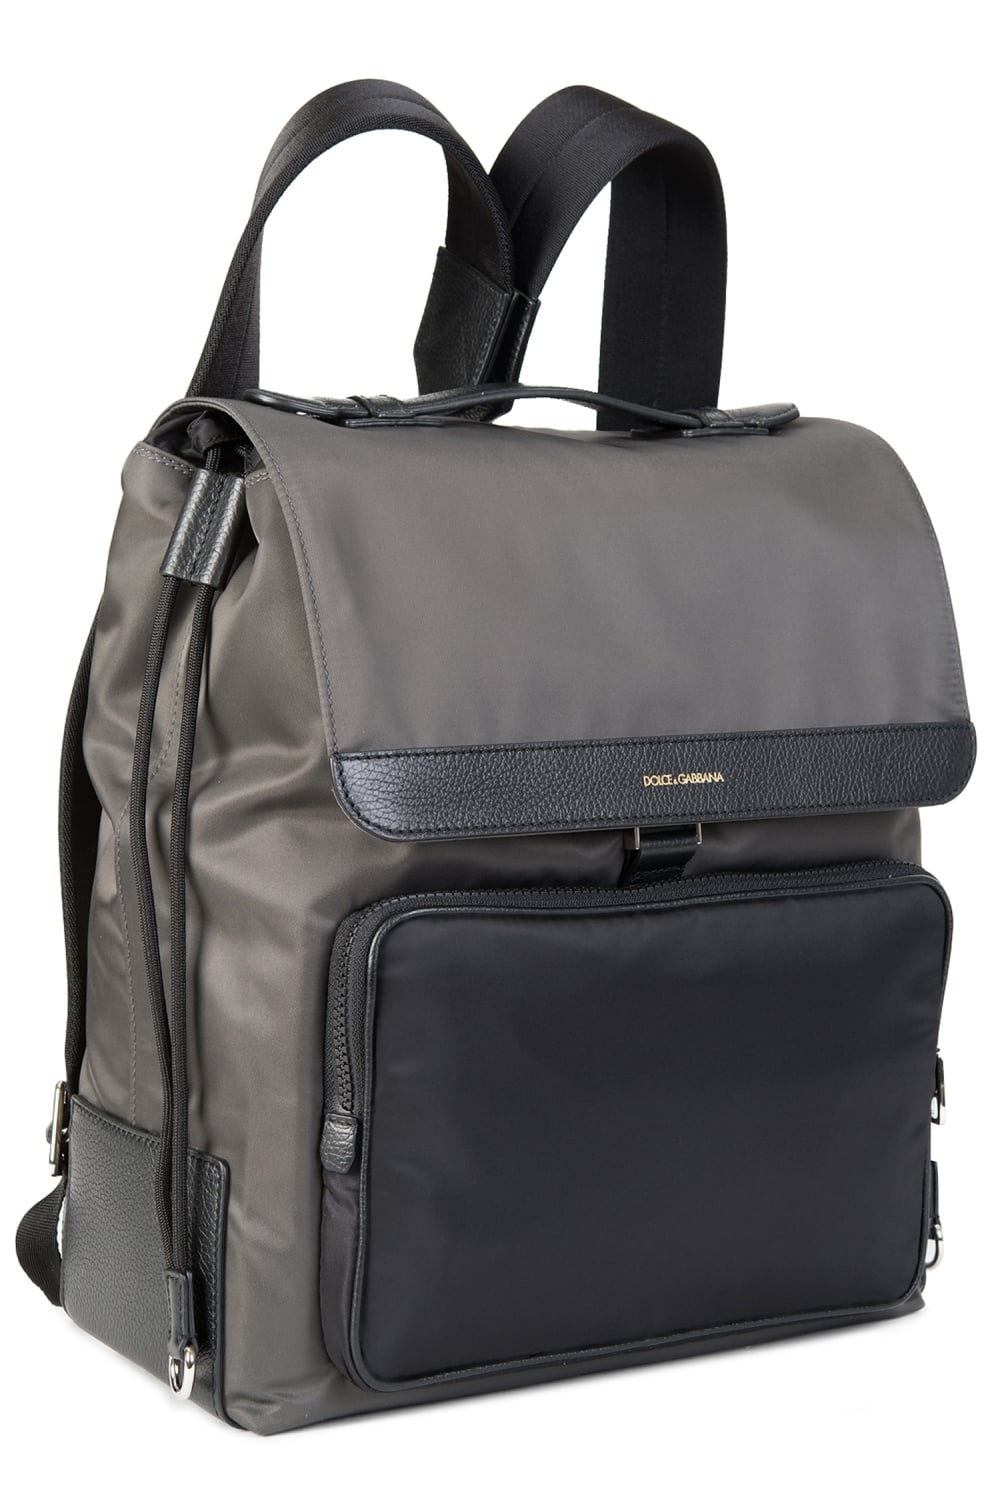 5f4315fe11 Dolce   Gabbana Mixed Material Backpack Grey